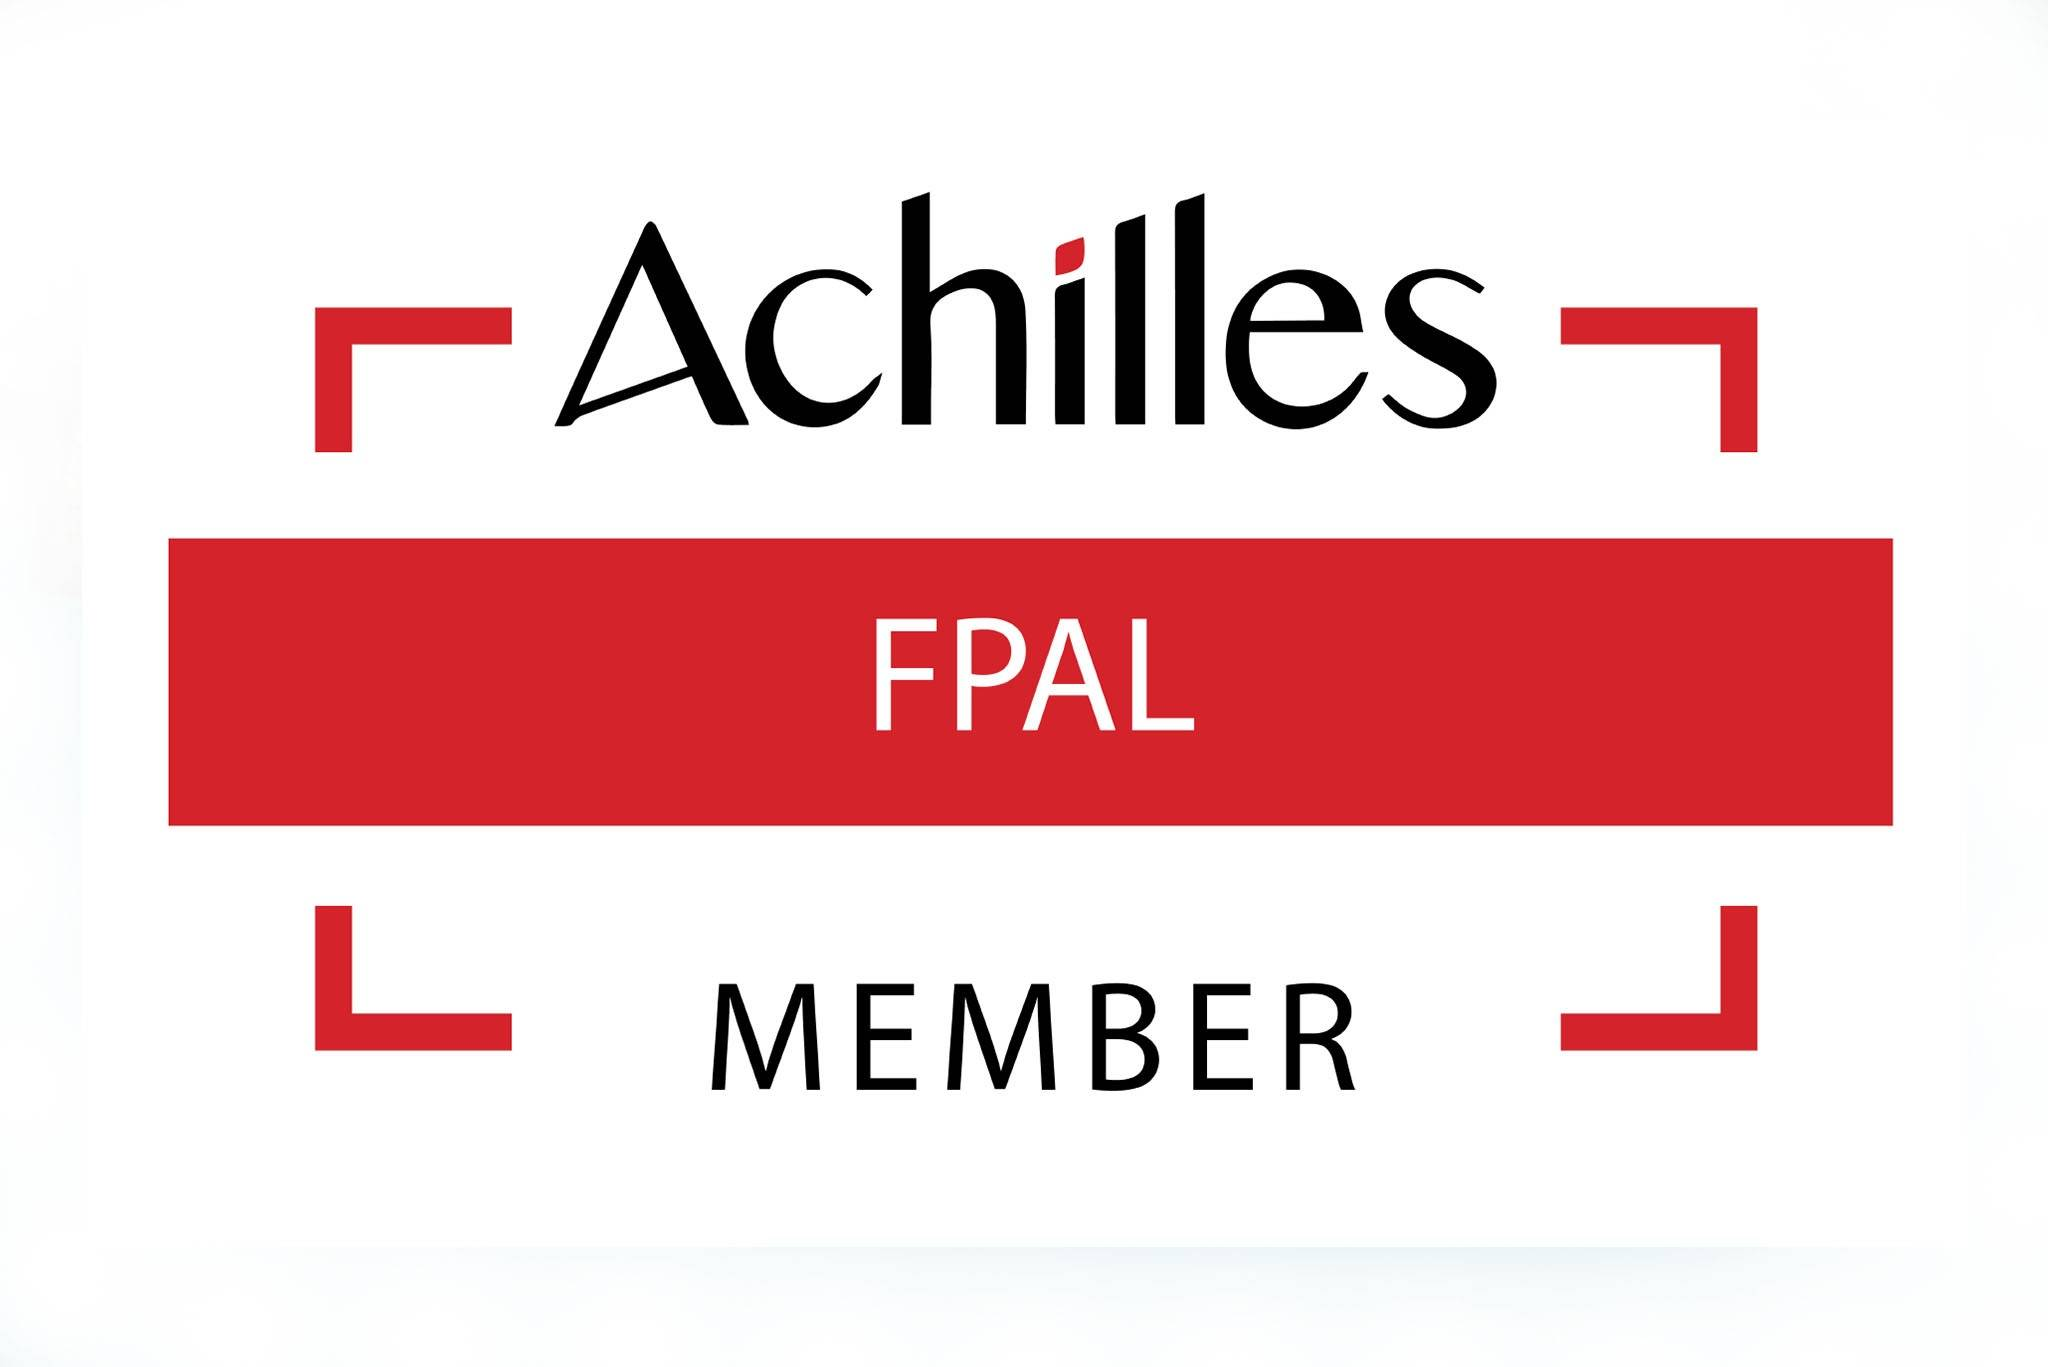 Achilles FPAL verified